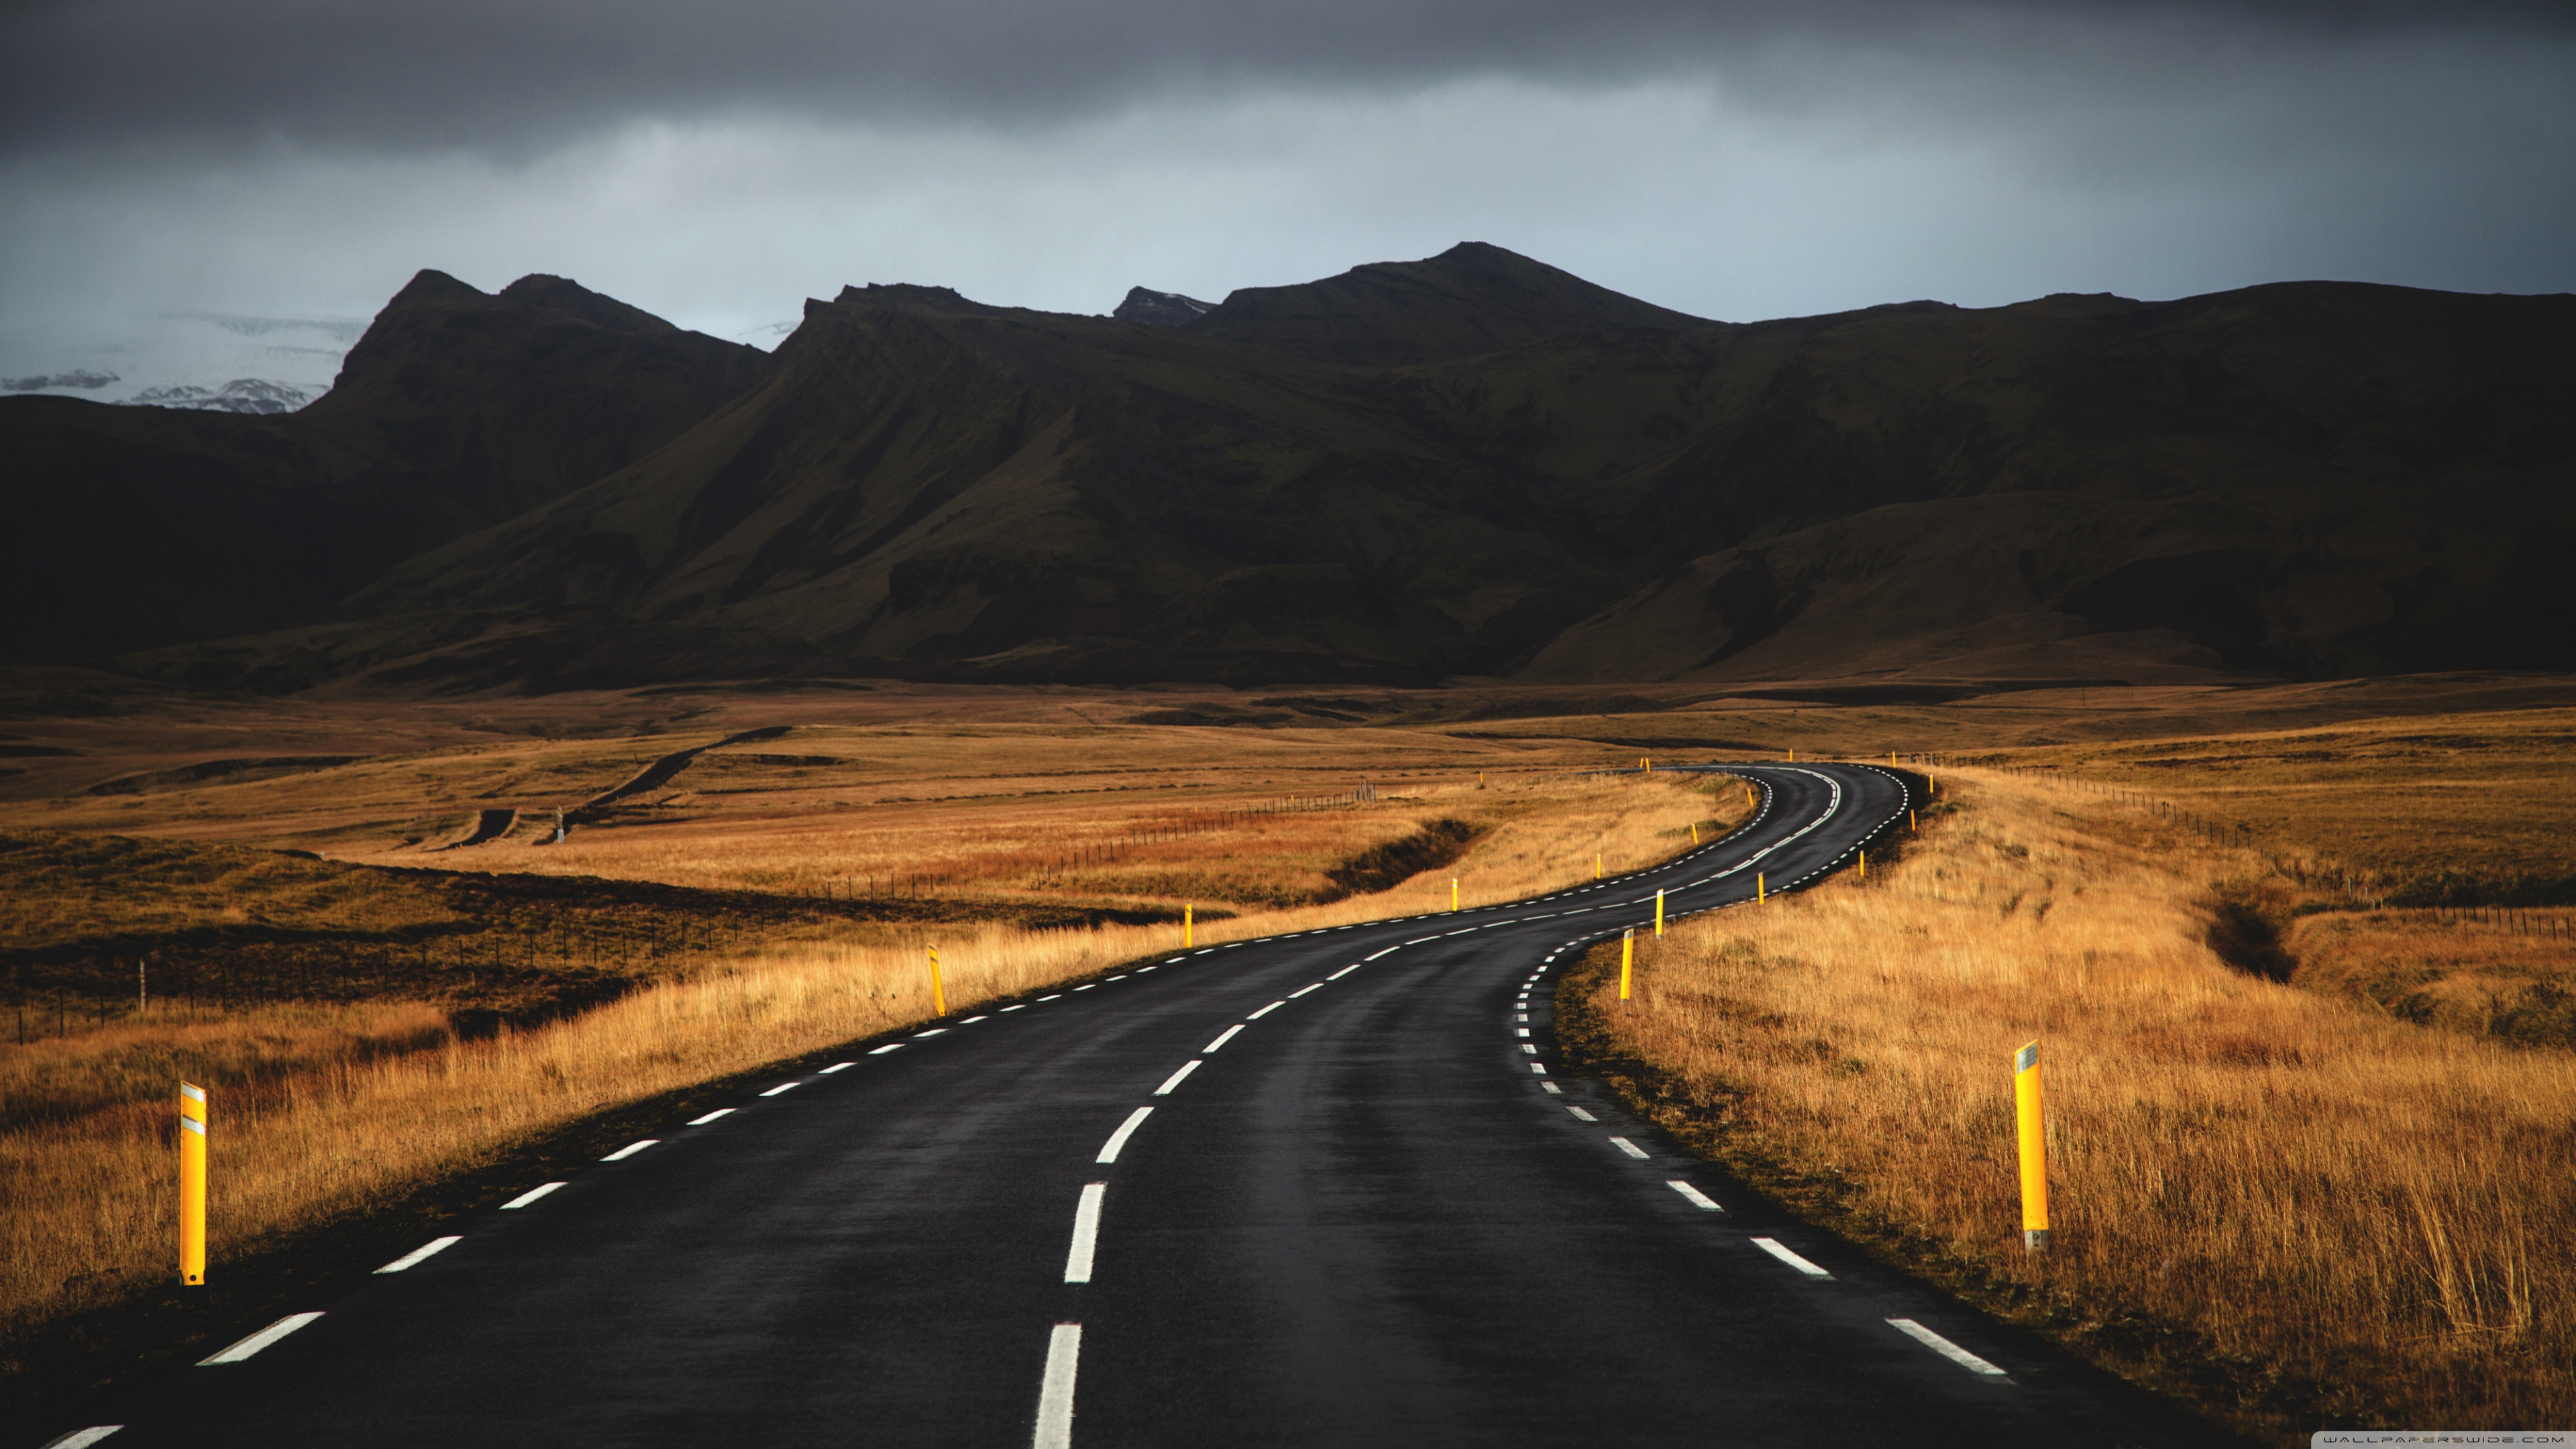 Free photo: Road - Highway, Cars - Free Download - Jooinn